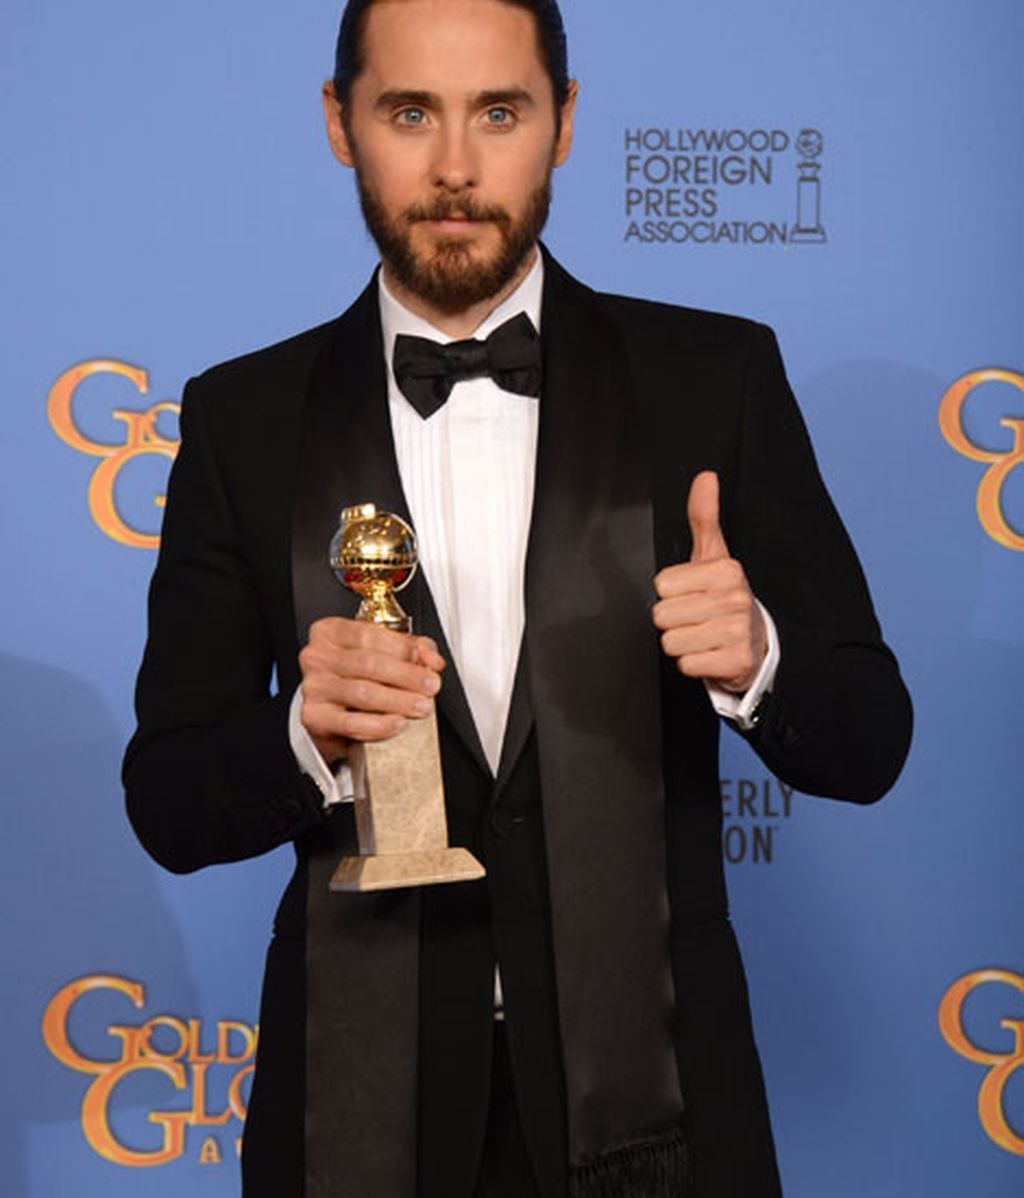 Jared Leto, mejor actor de reparto